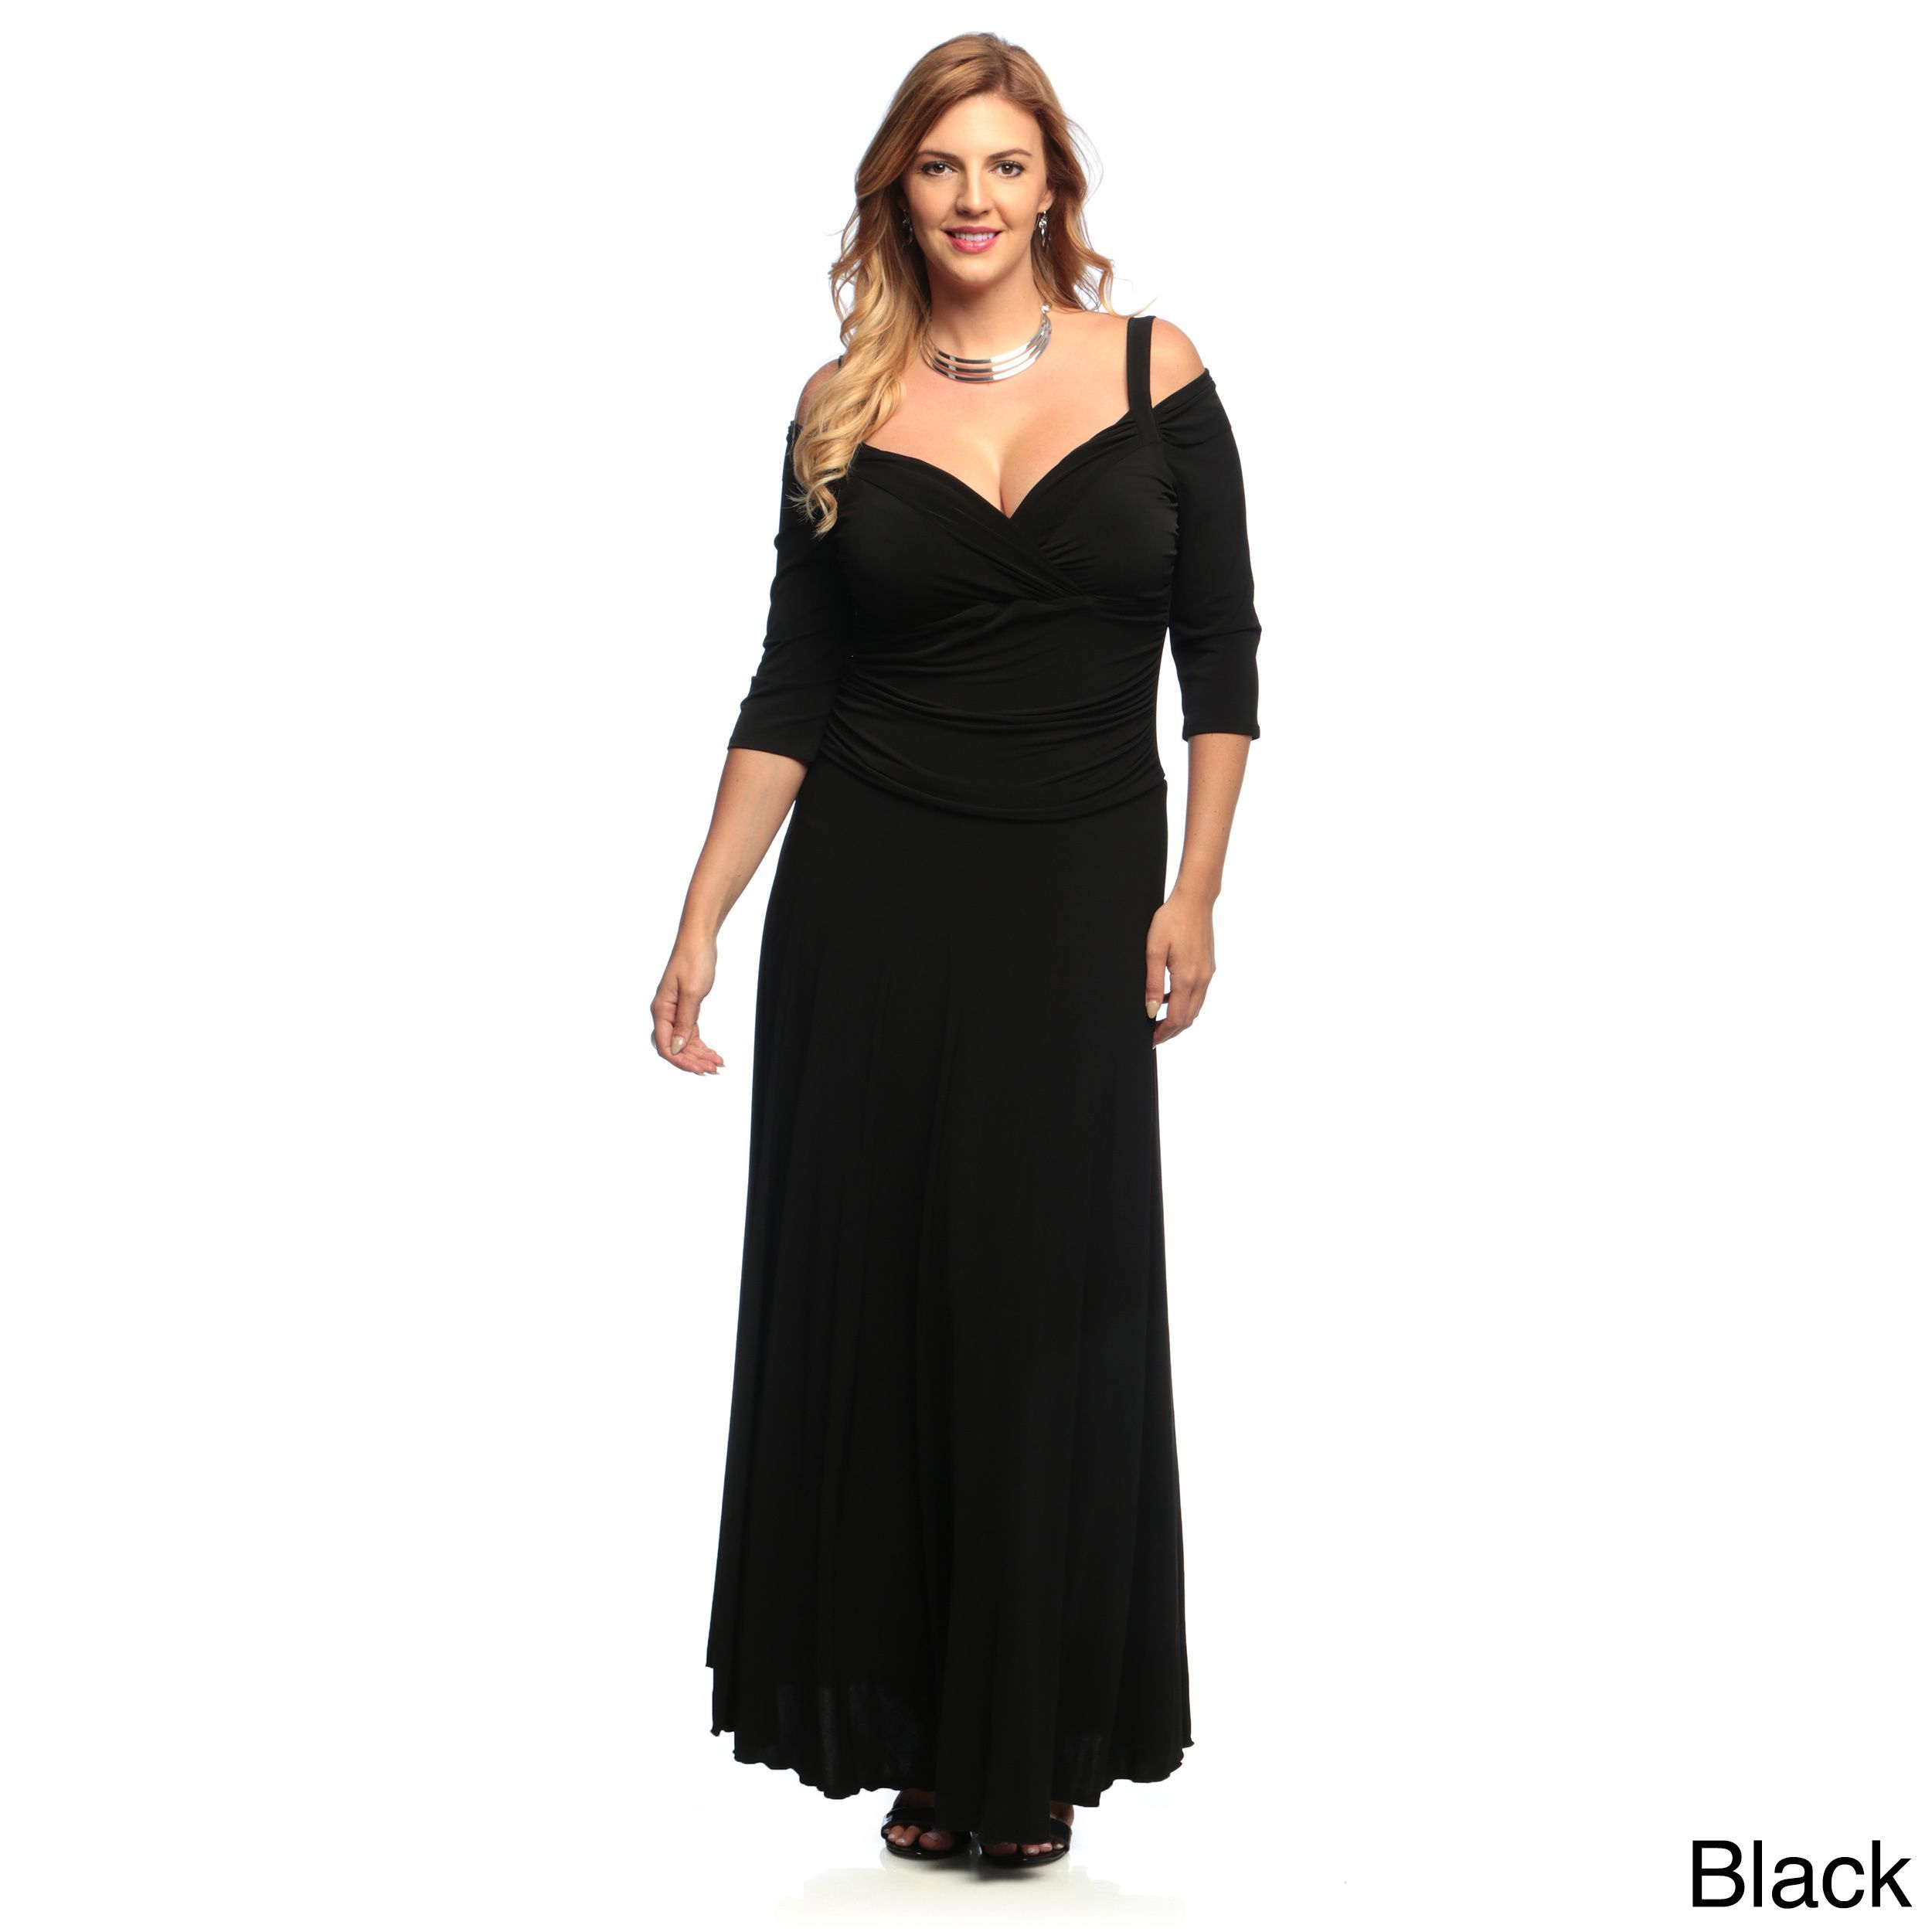 Evanese womenus plus size sleeve long dress products